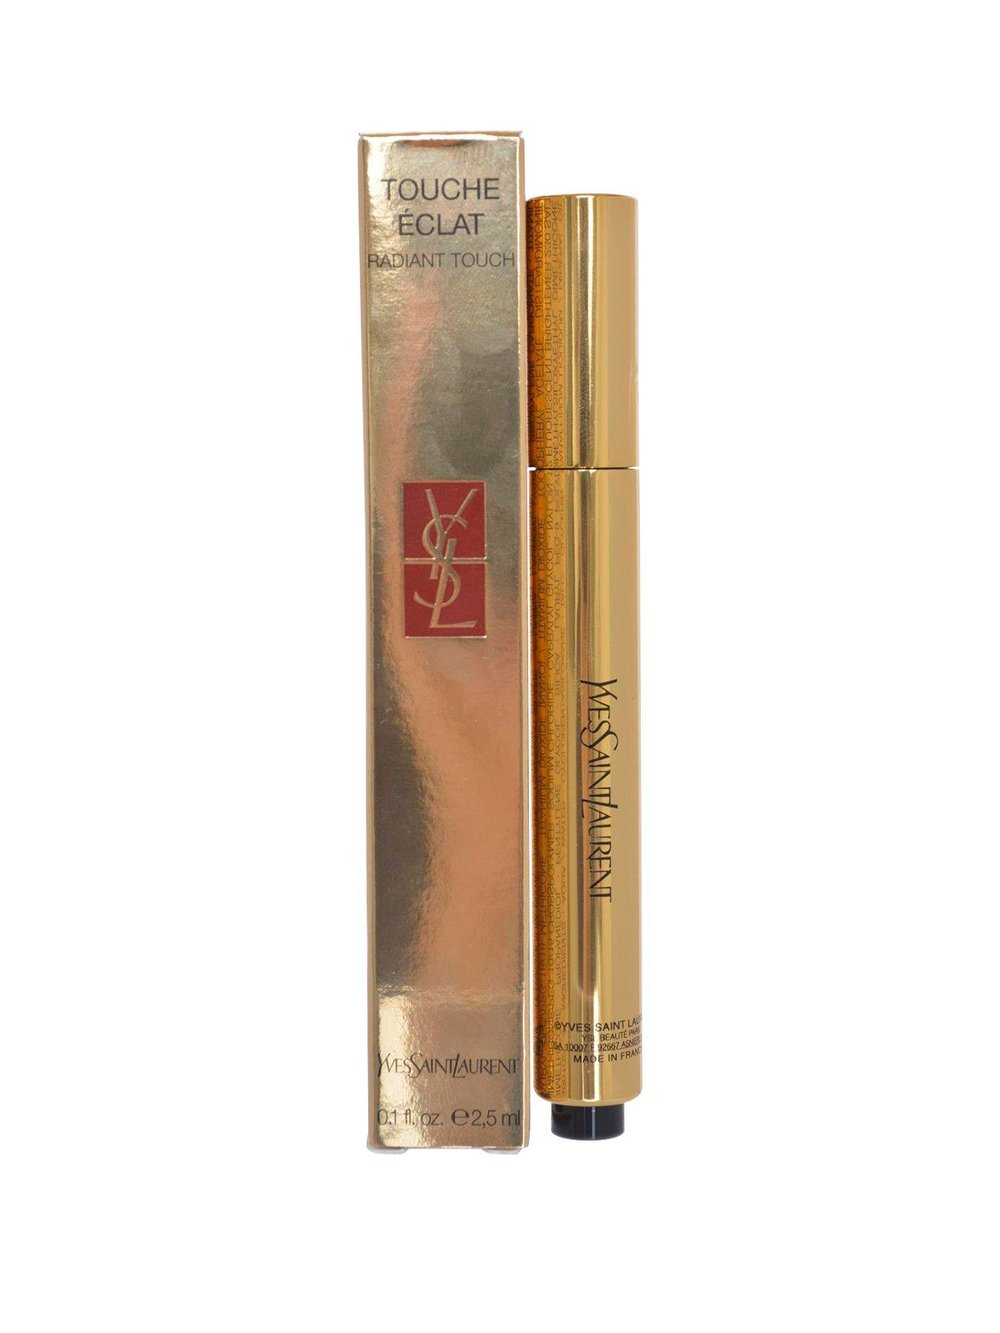 YSL Touche Eclat £24.99 at Very